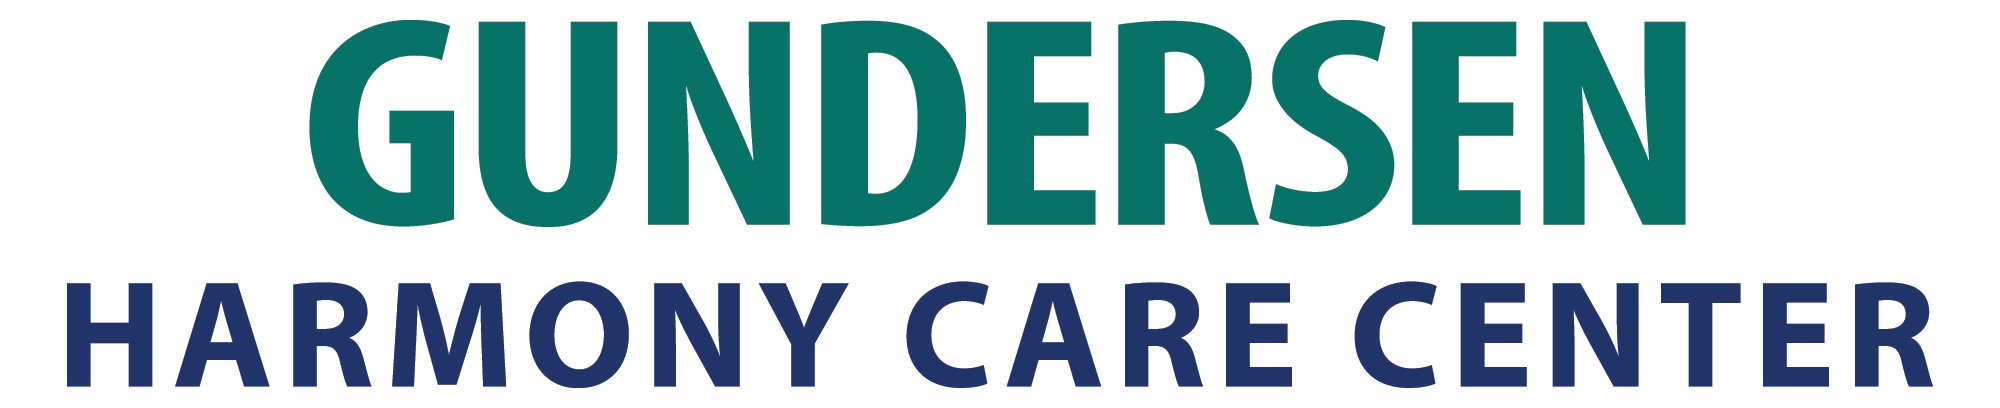 Gundersen Harmony Care Center logo